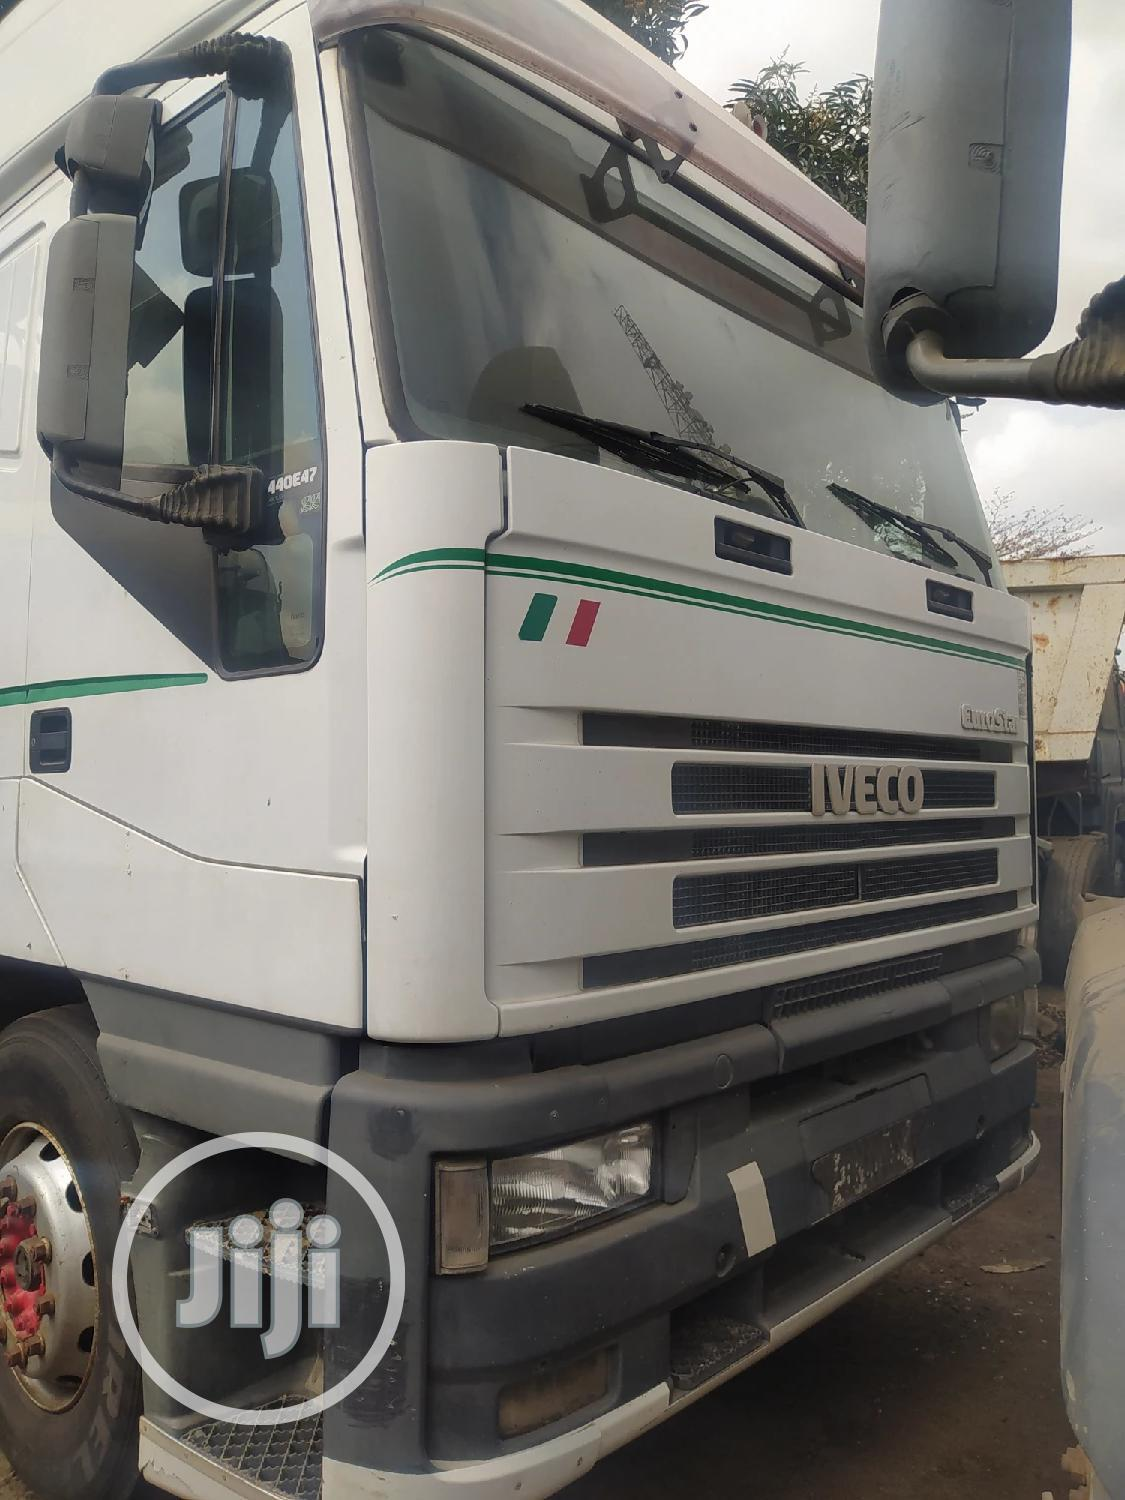 Archive: Newly Arrived Tokunbo Euro Star 440E47 With Sound Engine.